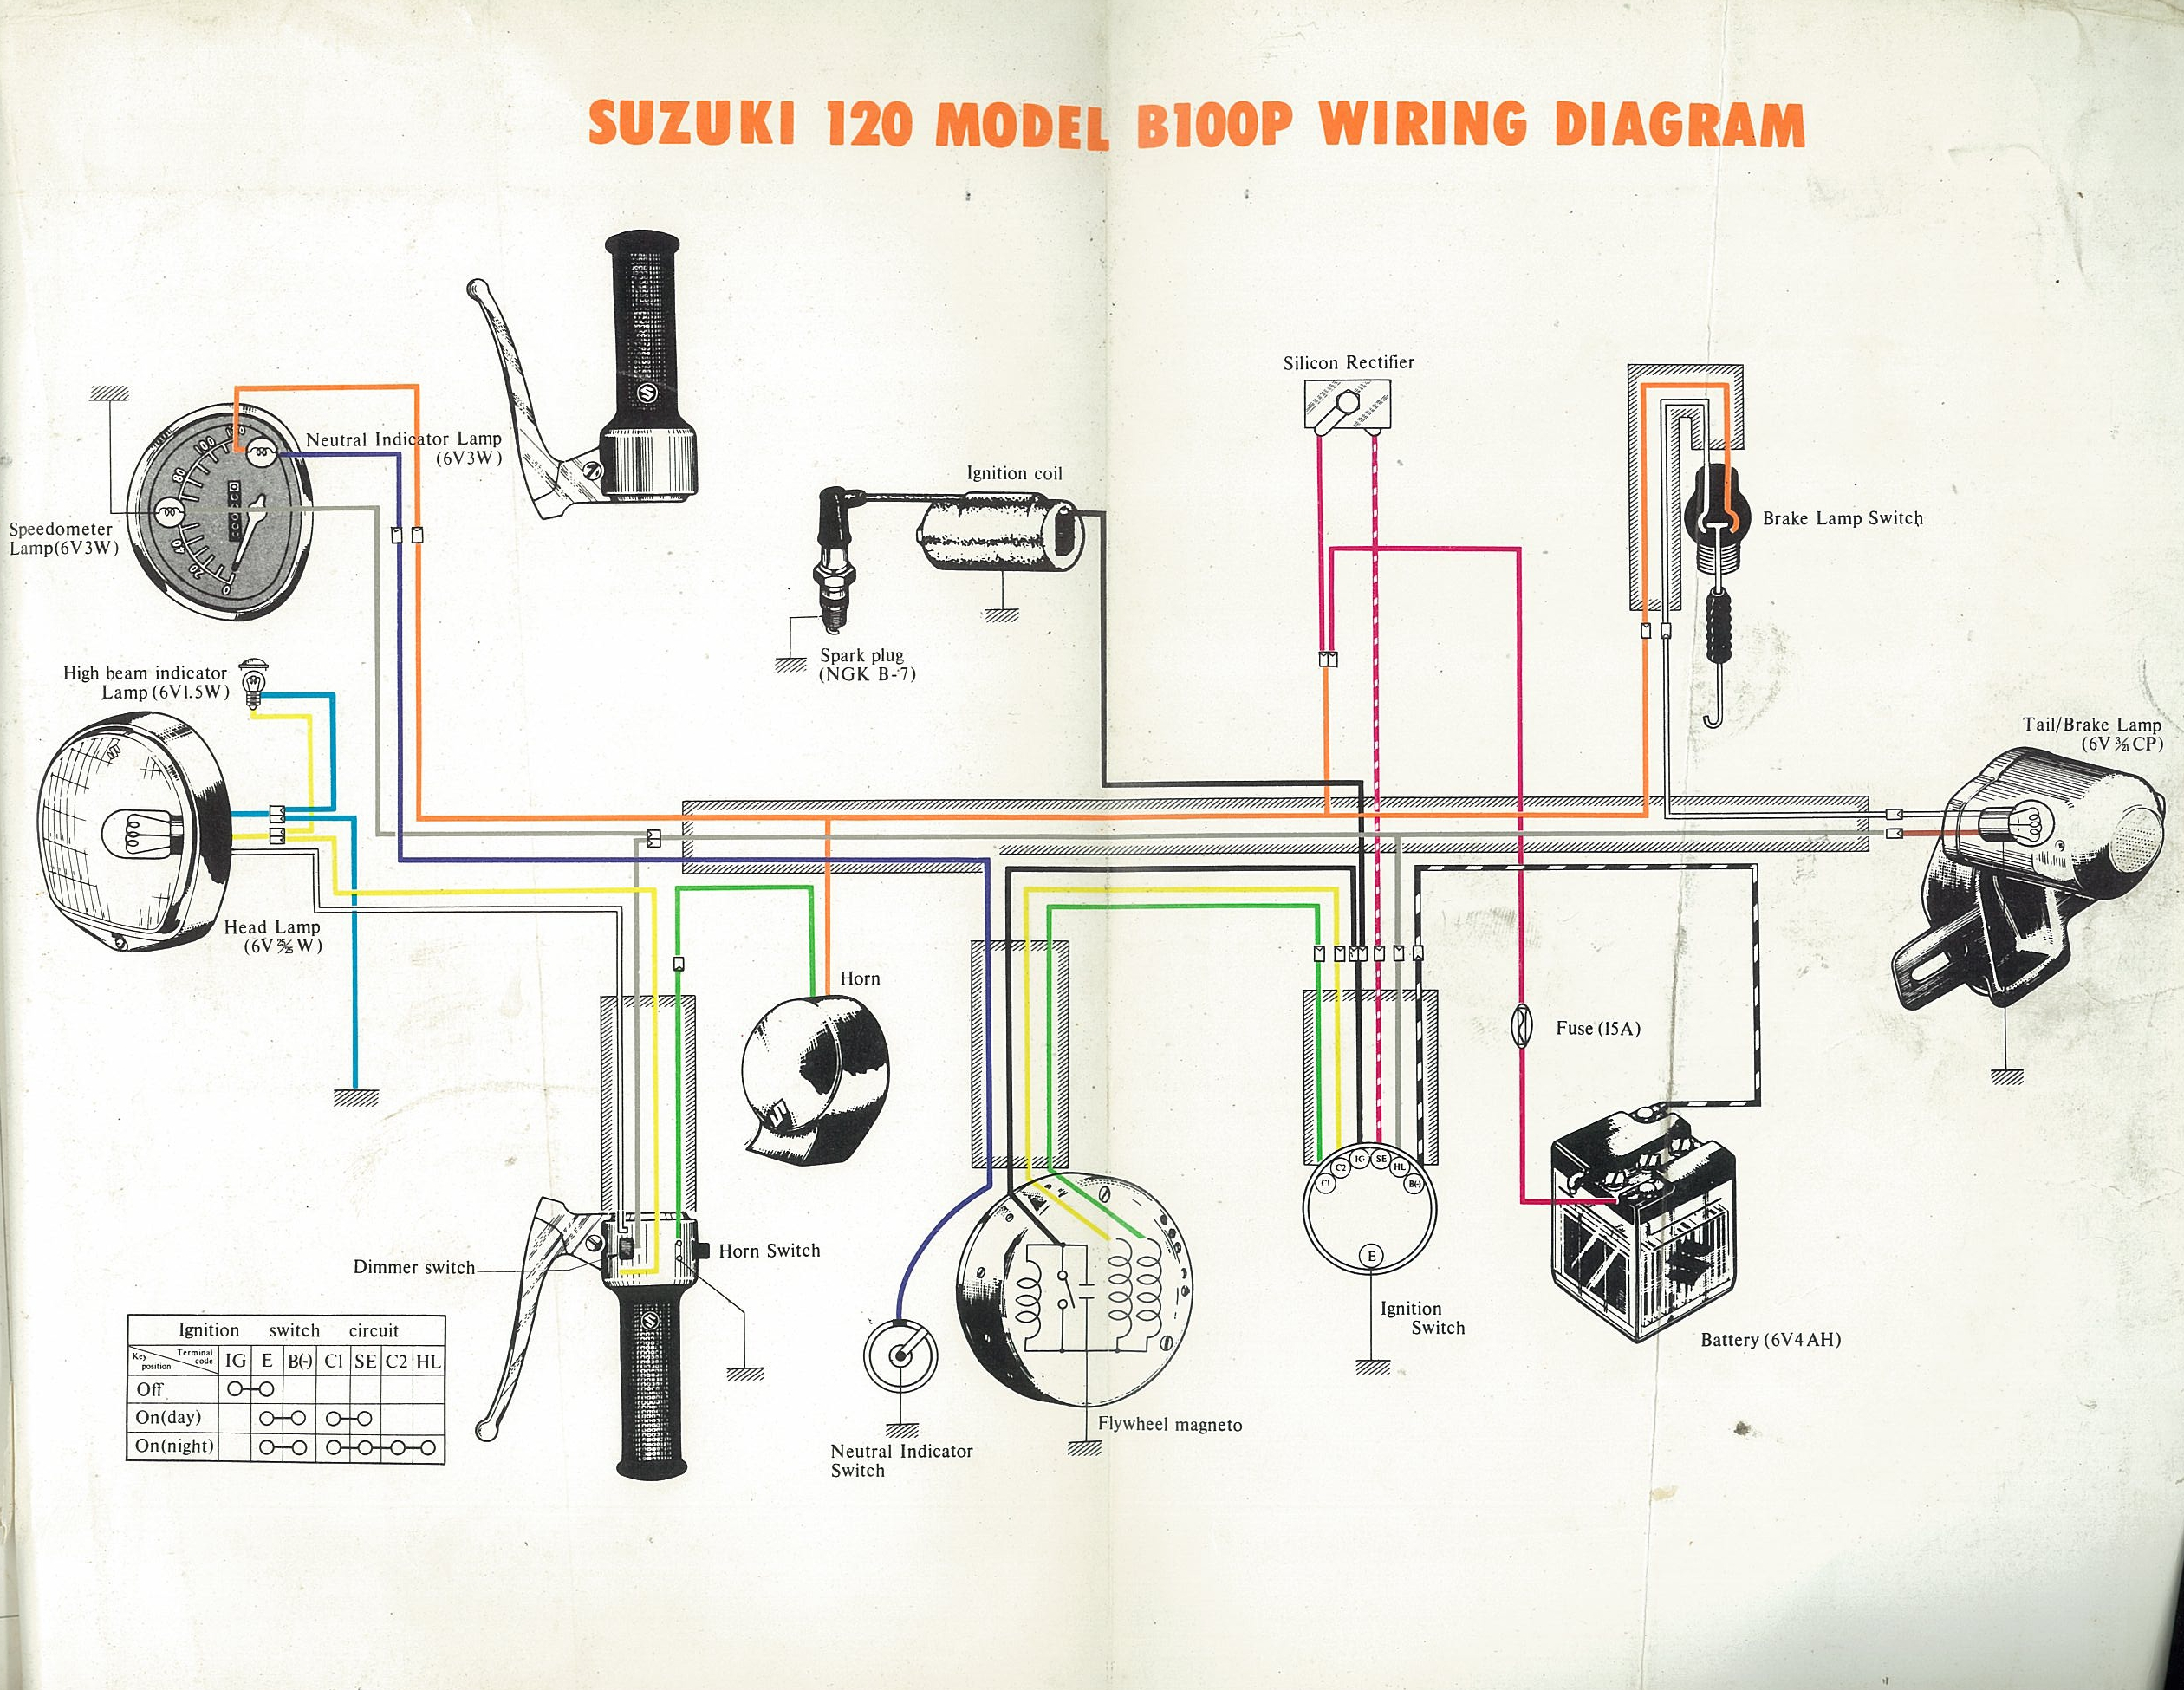 ignition switch wiring diagram 1973 dt3 yamaha motorcycle sundial moto sports     view topic bypassing the    ignition     sundial moto sports     view topic bypassing the    ignition